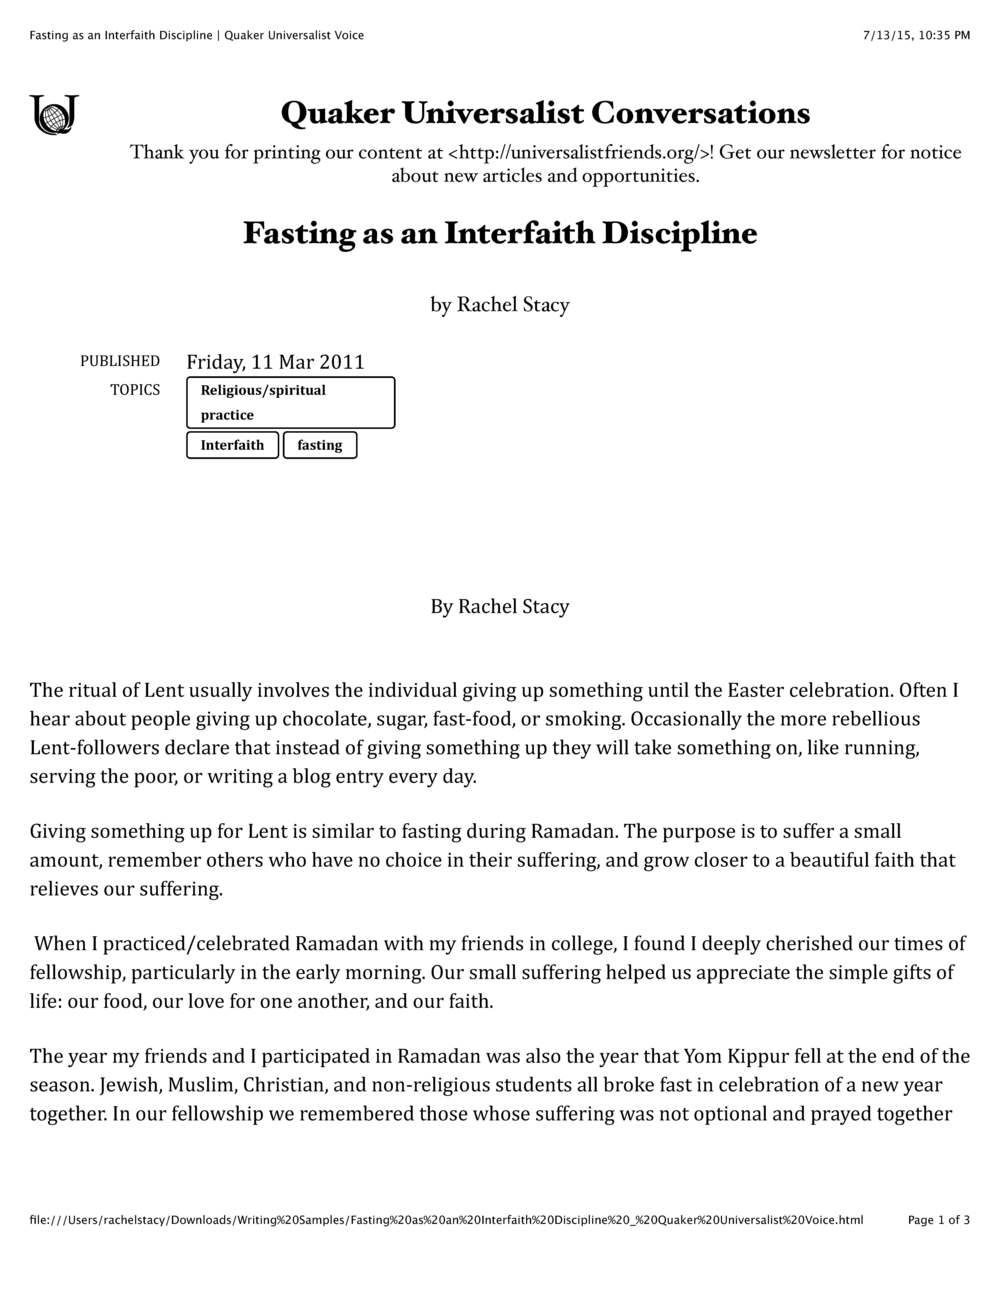 Fasting as an Interfaith Discipline | Quaker Universalist Voice_Page_1.jpg